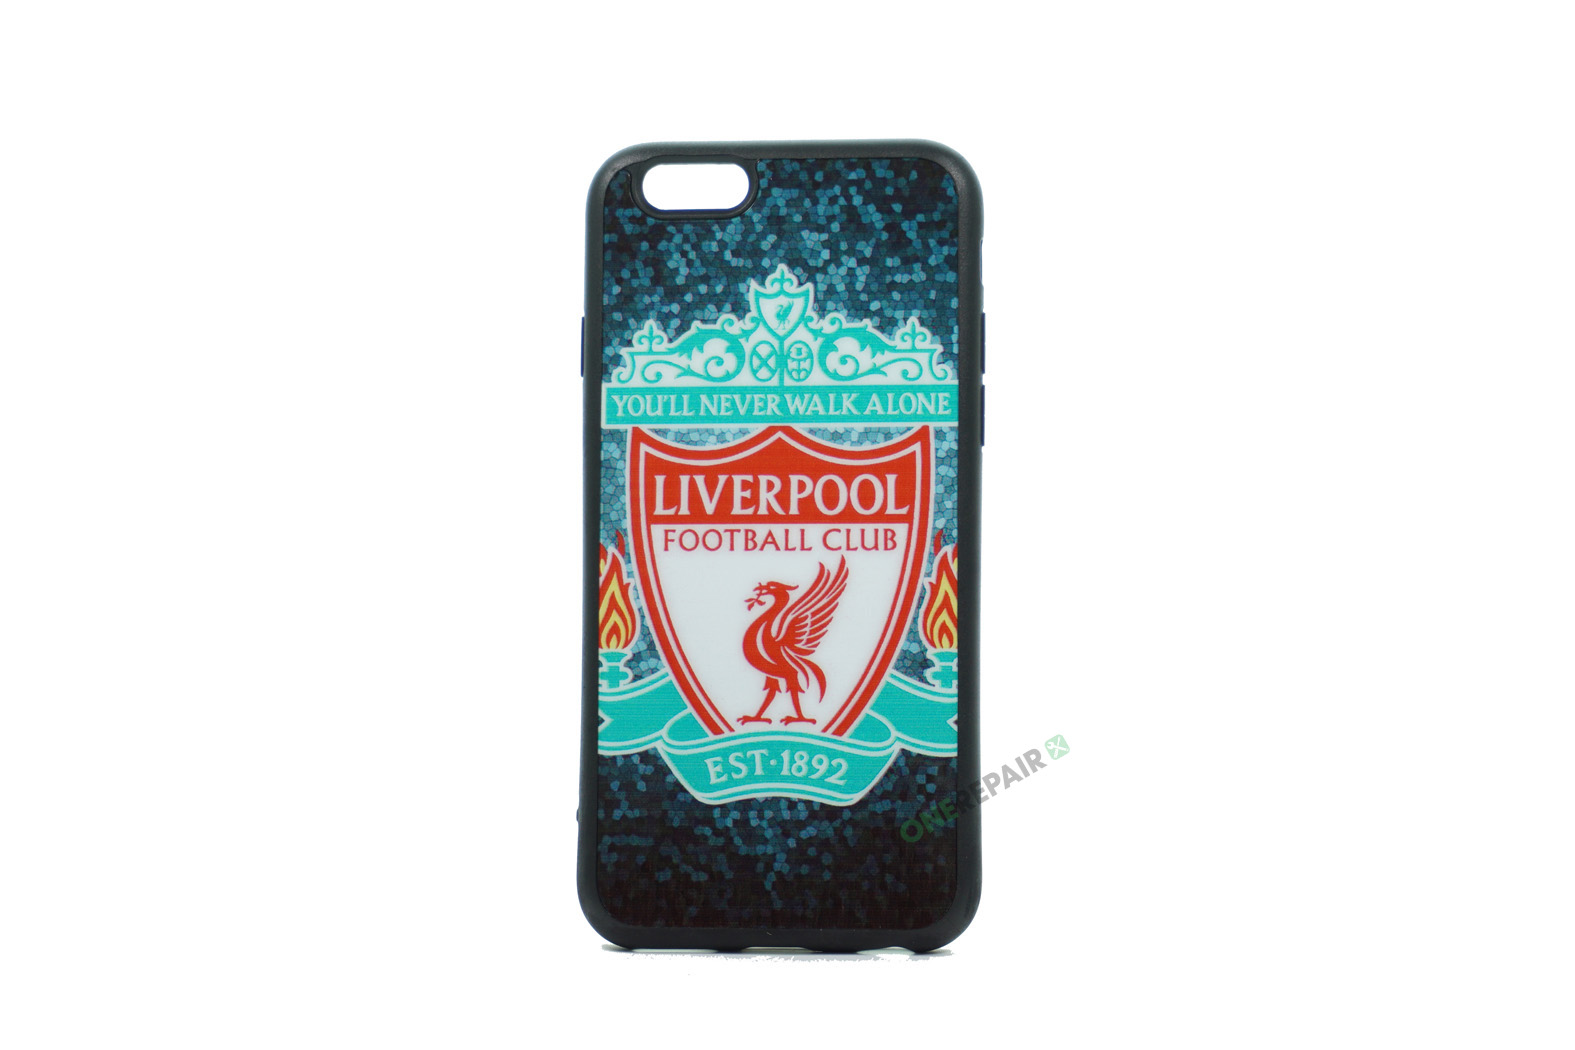 iPhone 6, 6S, A1549, A1586, A1589, A1633, A1688, A1700, A1691, Apple, Bagcover, Cover, Billig, Motiv, Fodbold, Klub, Liverpool, FC, YNWA